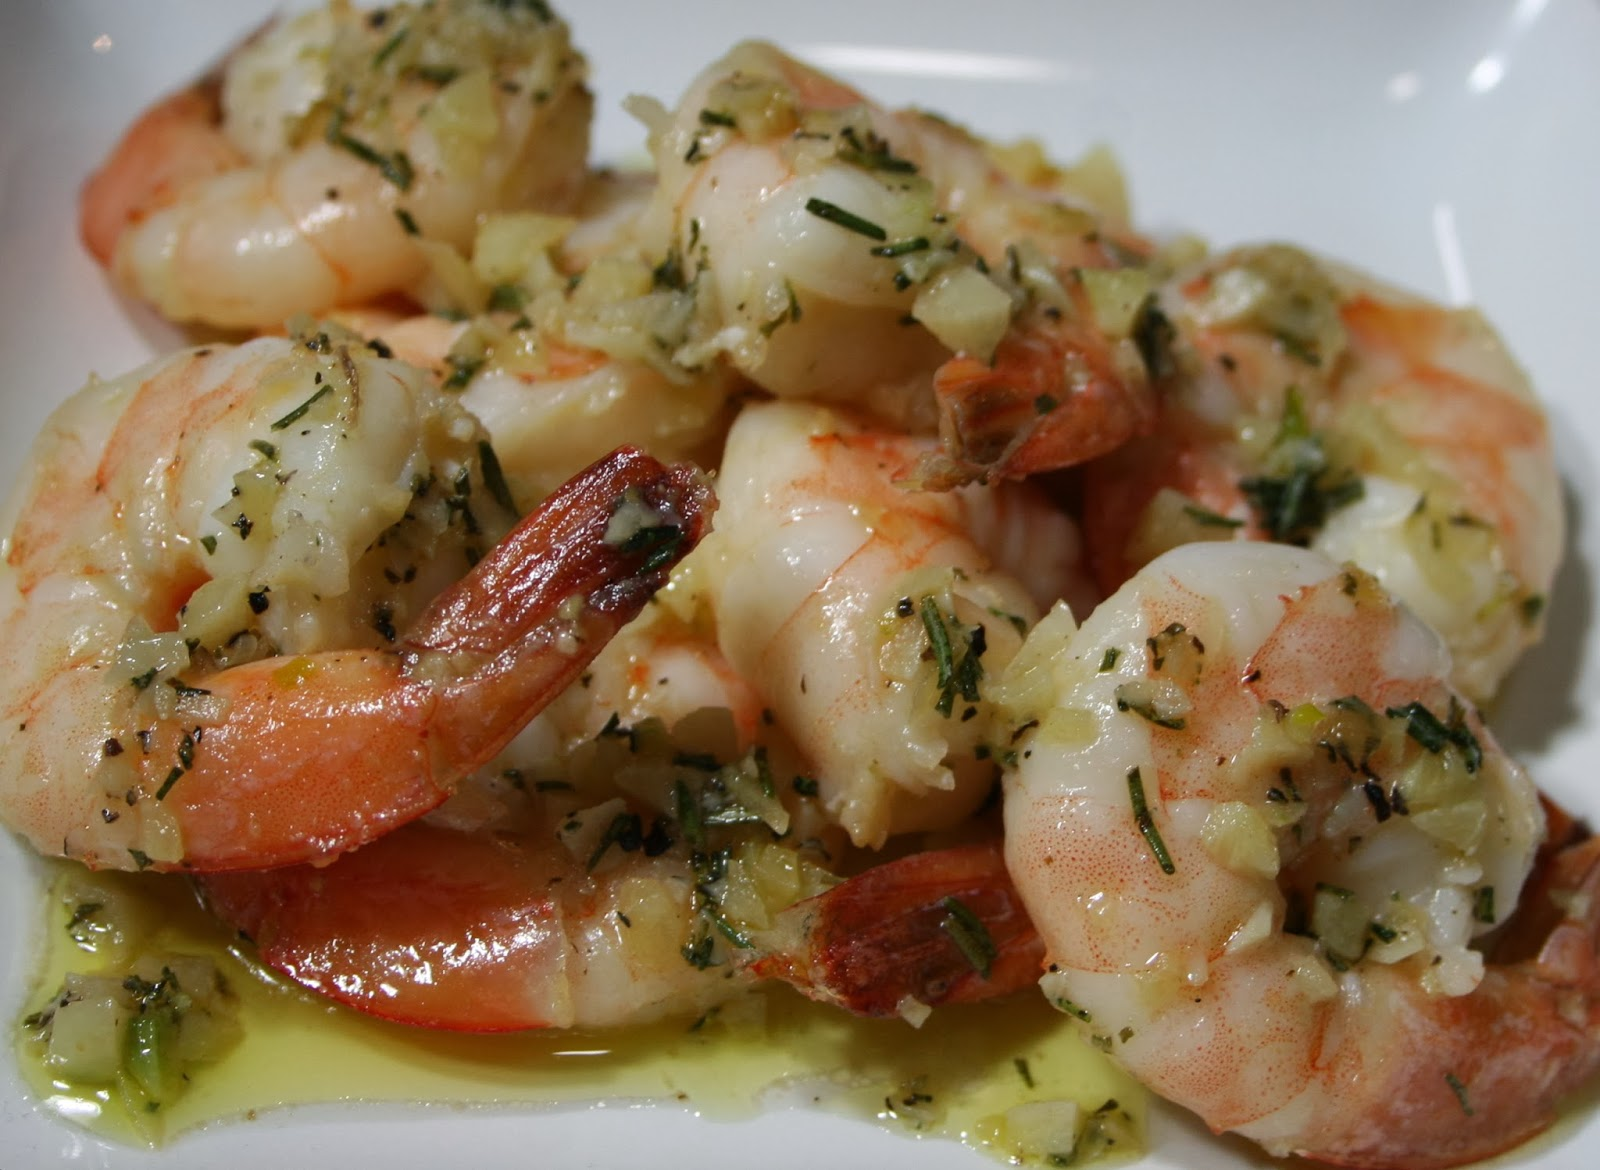 Just A Darling Life: Sauteed Shrimp in Butter, Garlic, and Rosemary